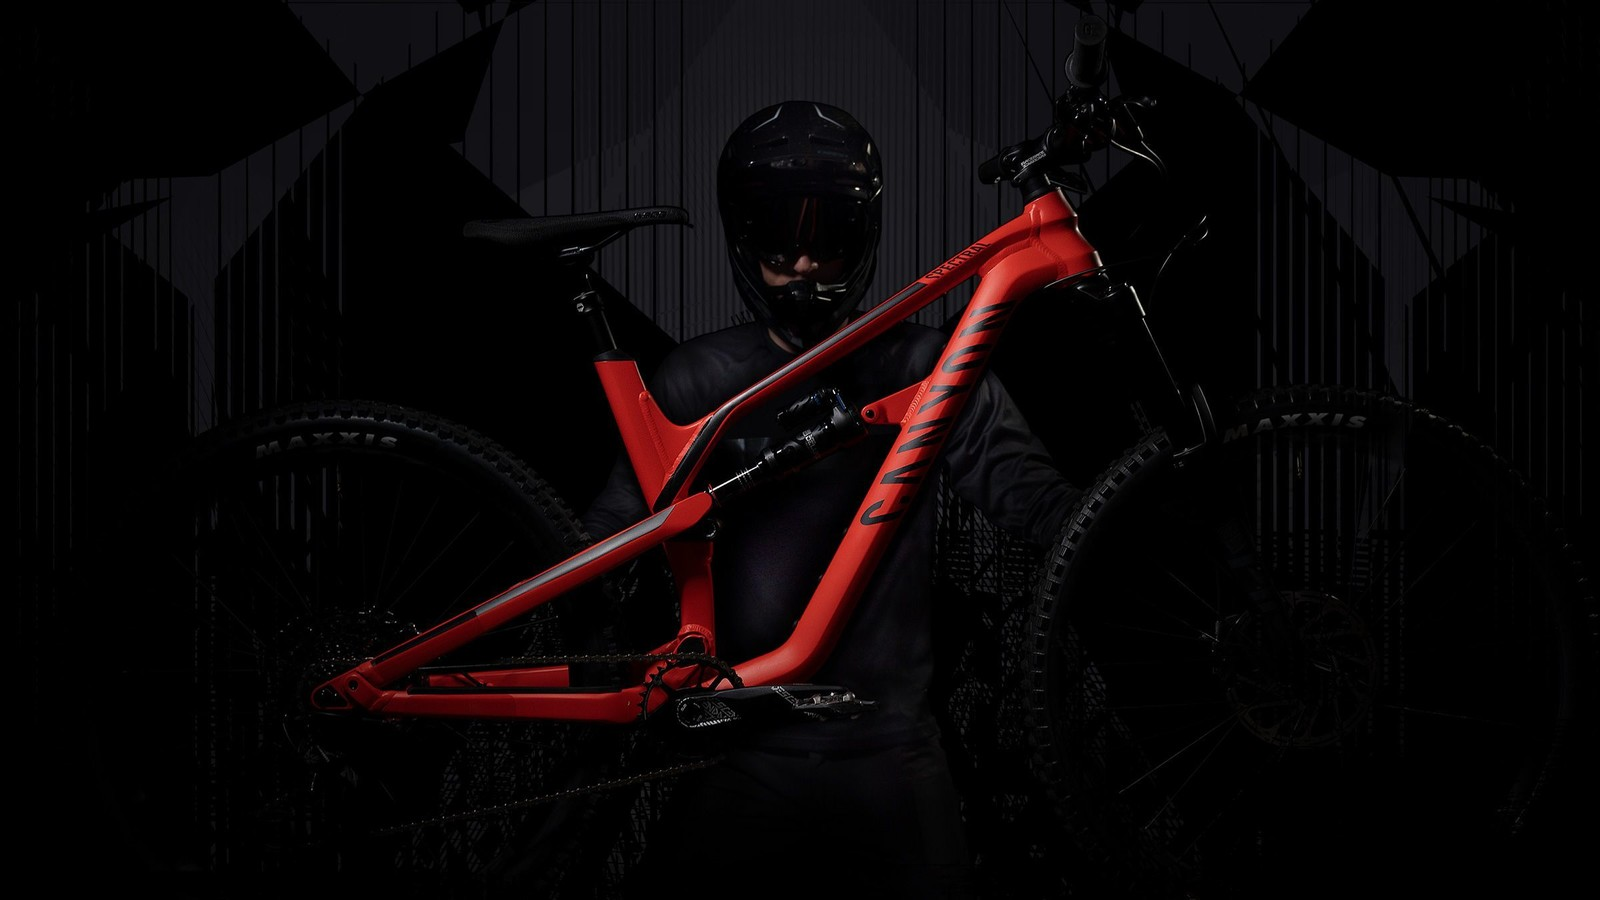 Metal Lives! Canyon Bikes' Metal Revival With the Spectral and Neuron